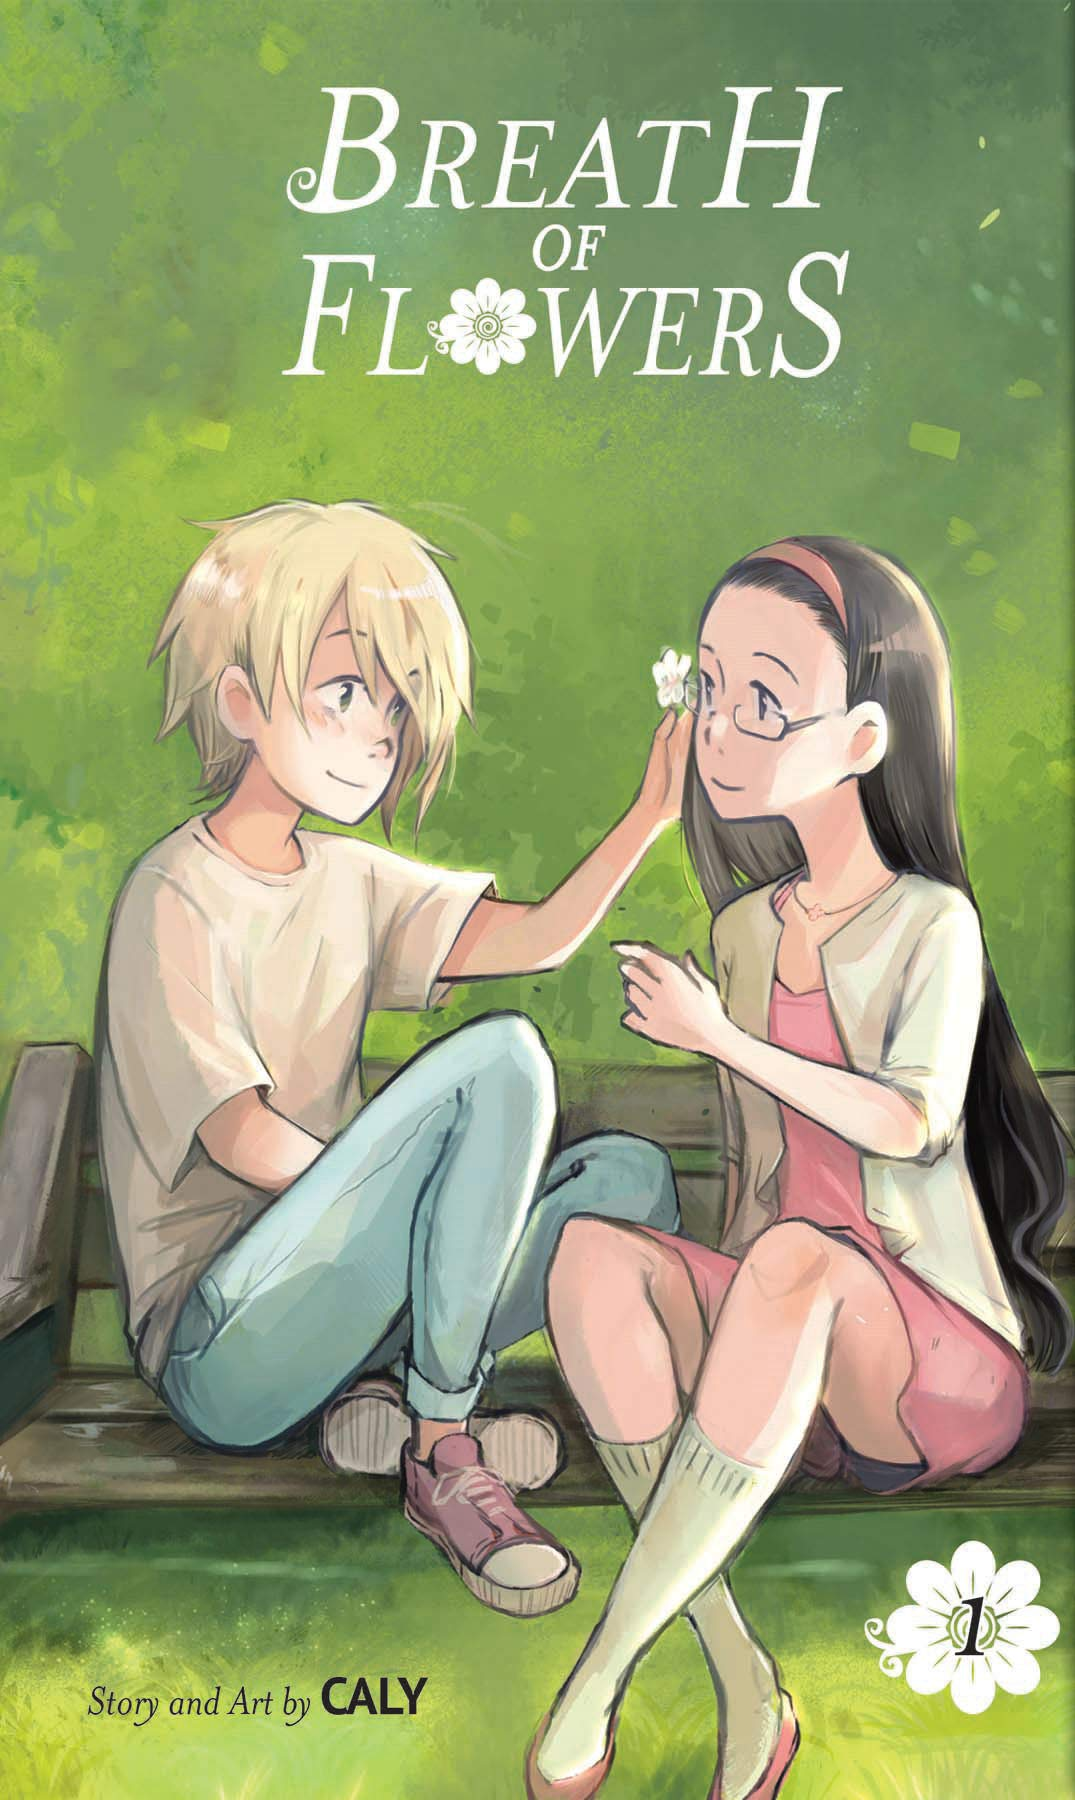 Title:  Breath of Flowers, Volume 1 , Author: Caly, Publisher: Tokyopop, Publish Date: August 20, 2019; Genre(s): YA, Young Adult, Contemporary, Romance, LGBT, Graphic Novel, Manga, YA Contemporary Romance LGBT